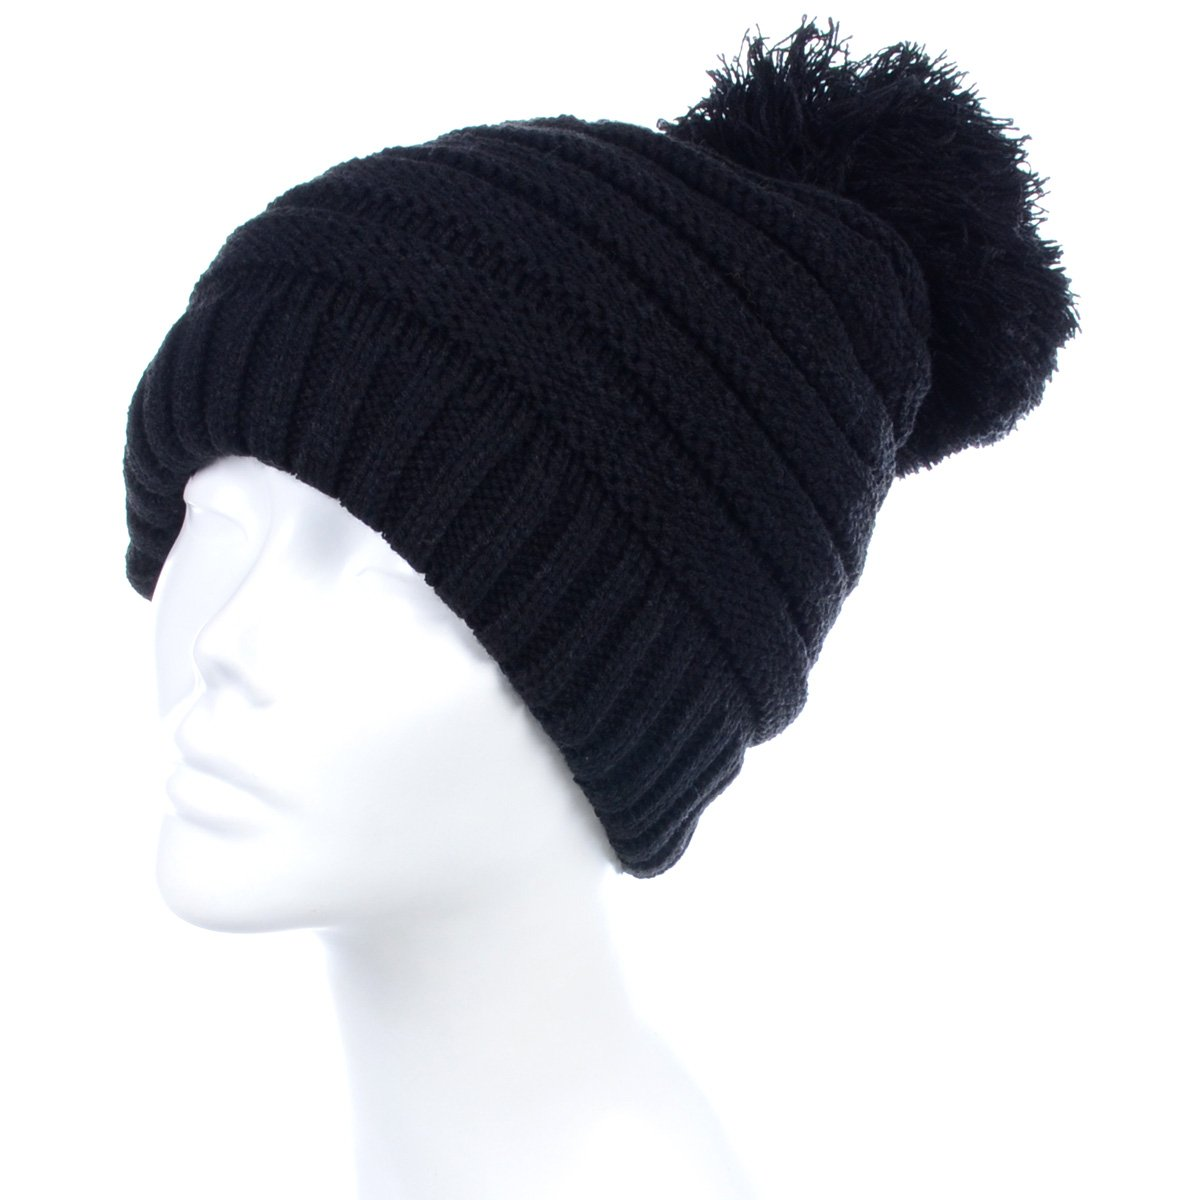 BYOS Winter Soft Warm Fleece Lined Chunky Ribbed Knit Pom Pom Beanie Hat, Thick for Cold Winter (Stripe-Black)